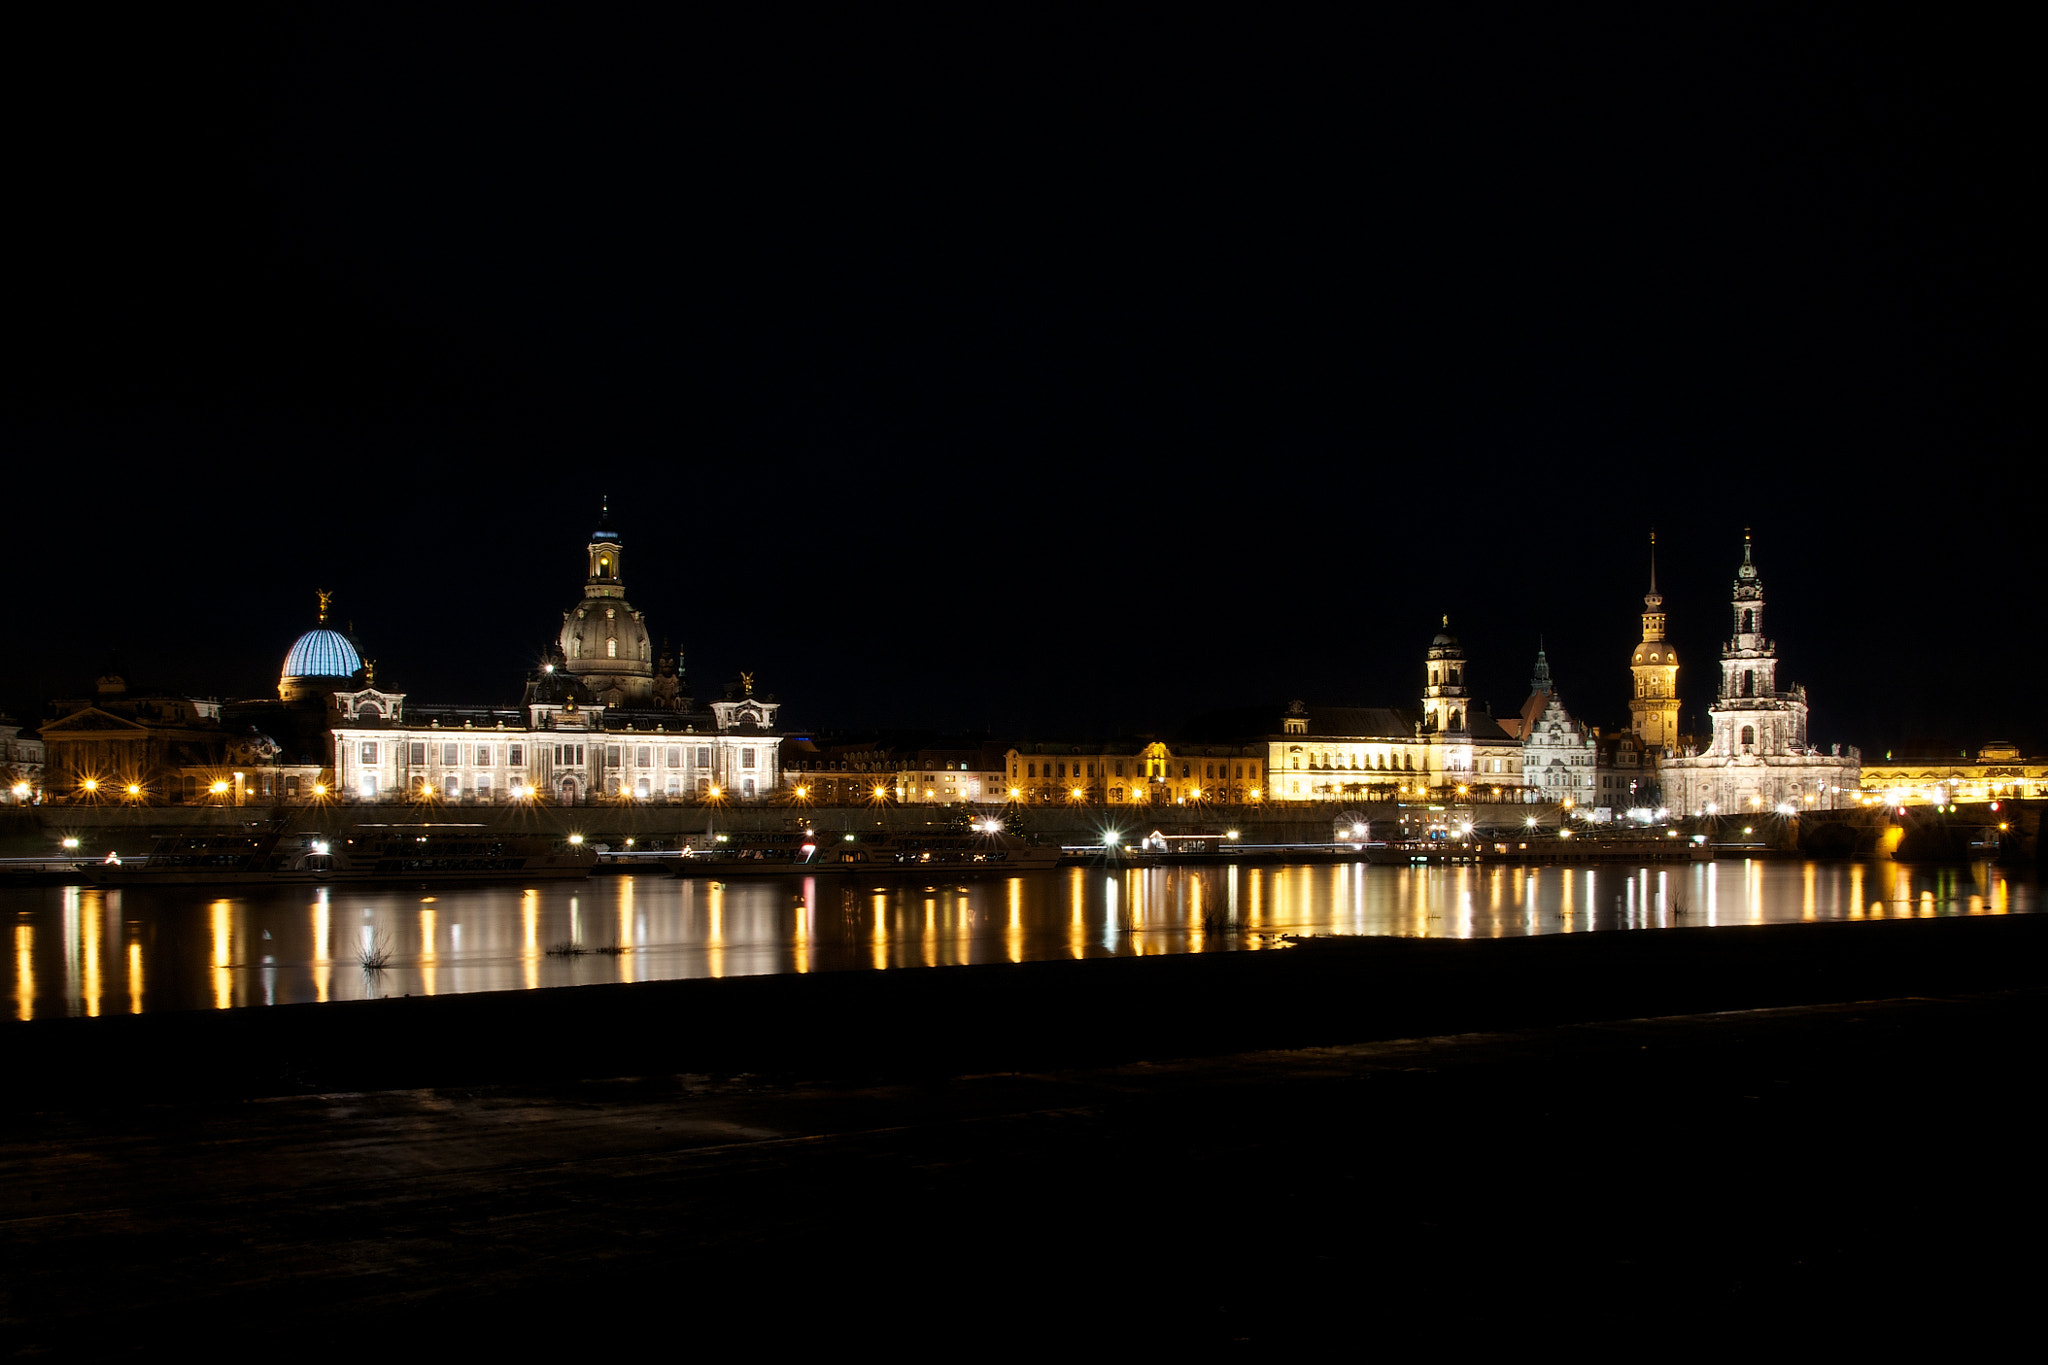 Photograph Dresden Canaletto View by Metatron76 on 500px